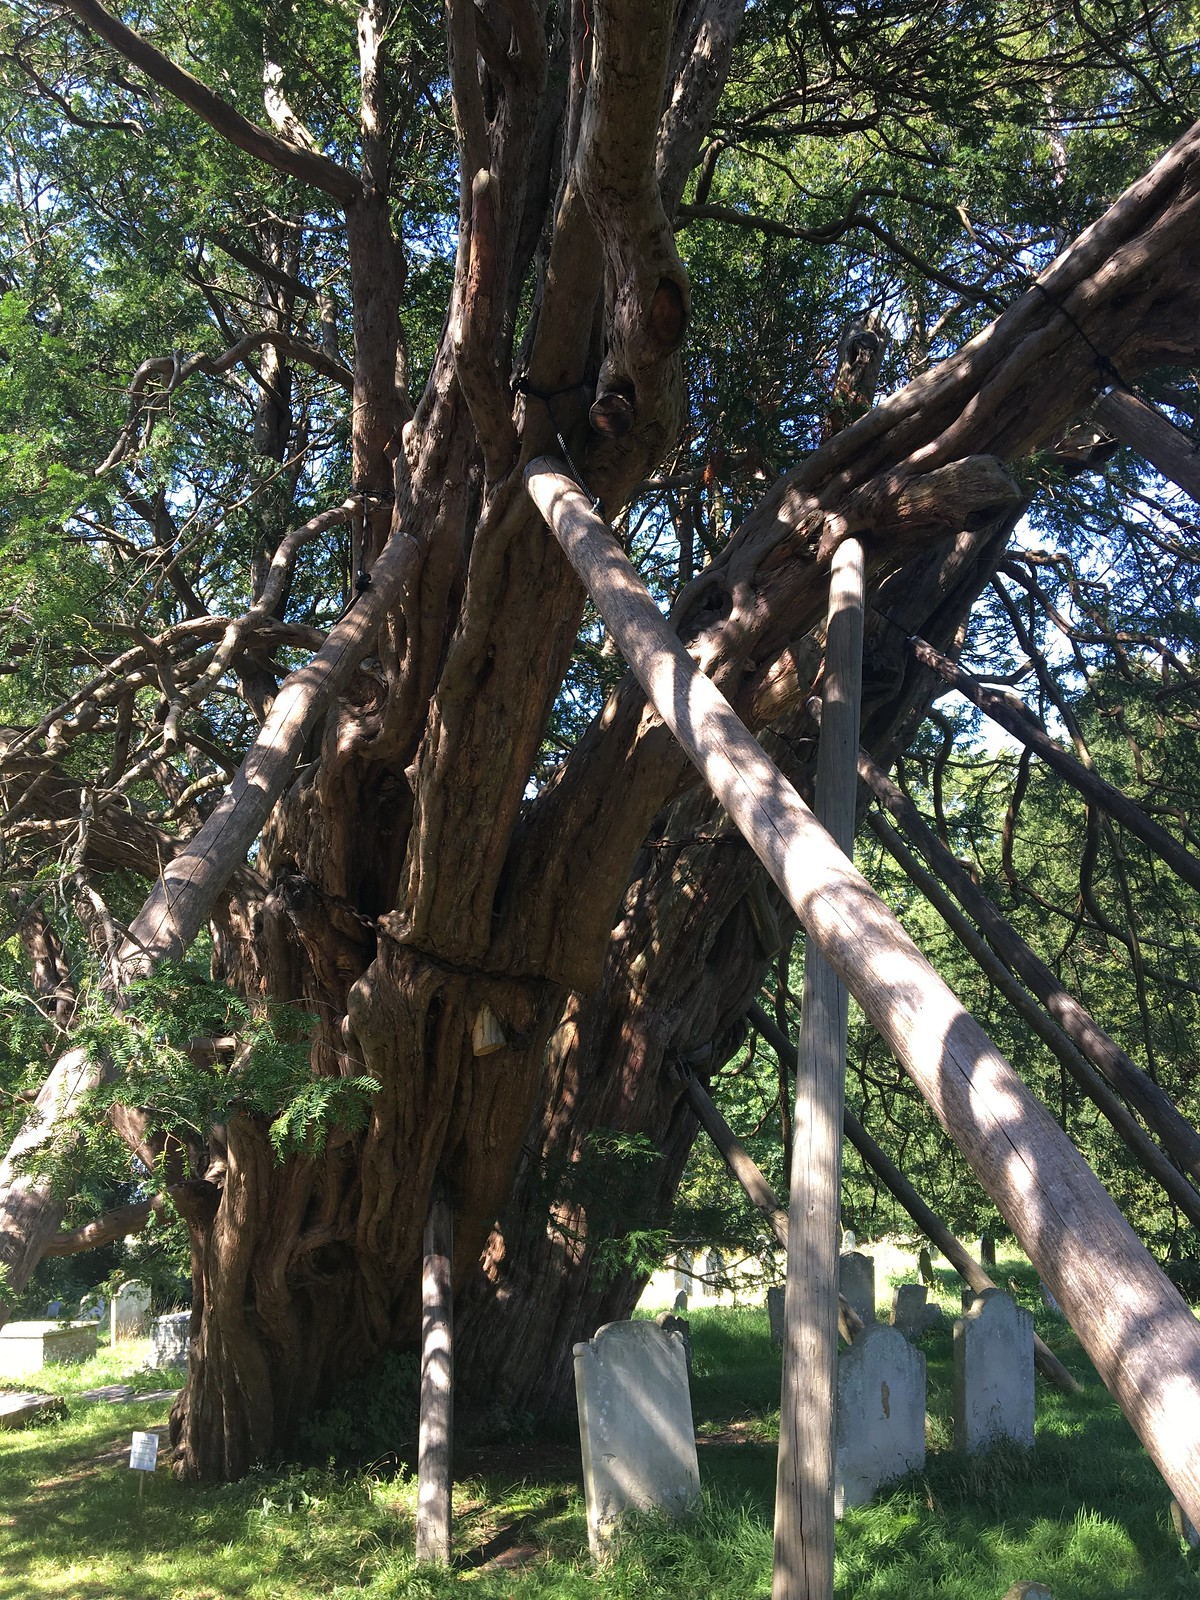 August 25, 2019: Berwick to Eastbourne Wilmington Church yew tree